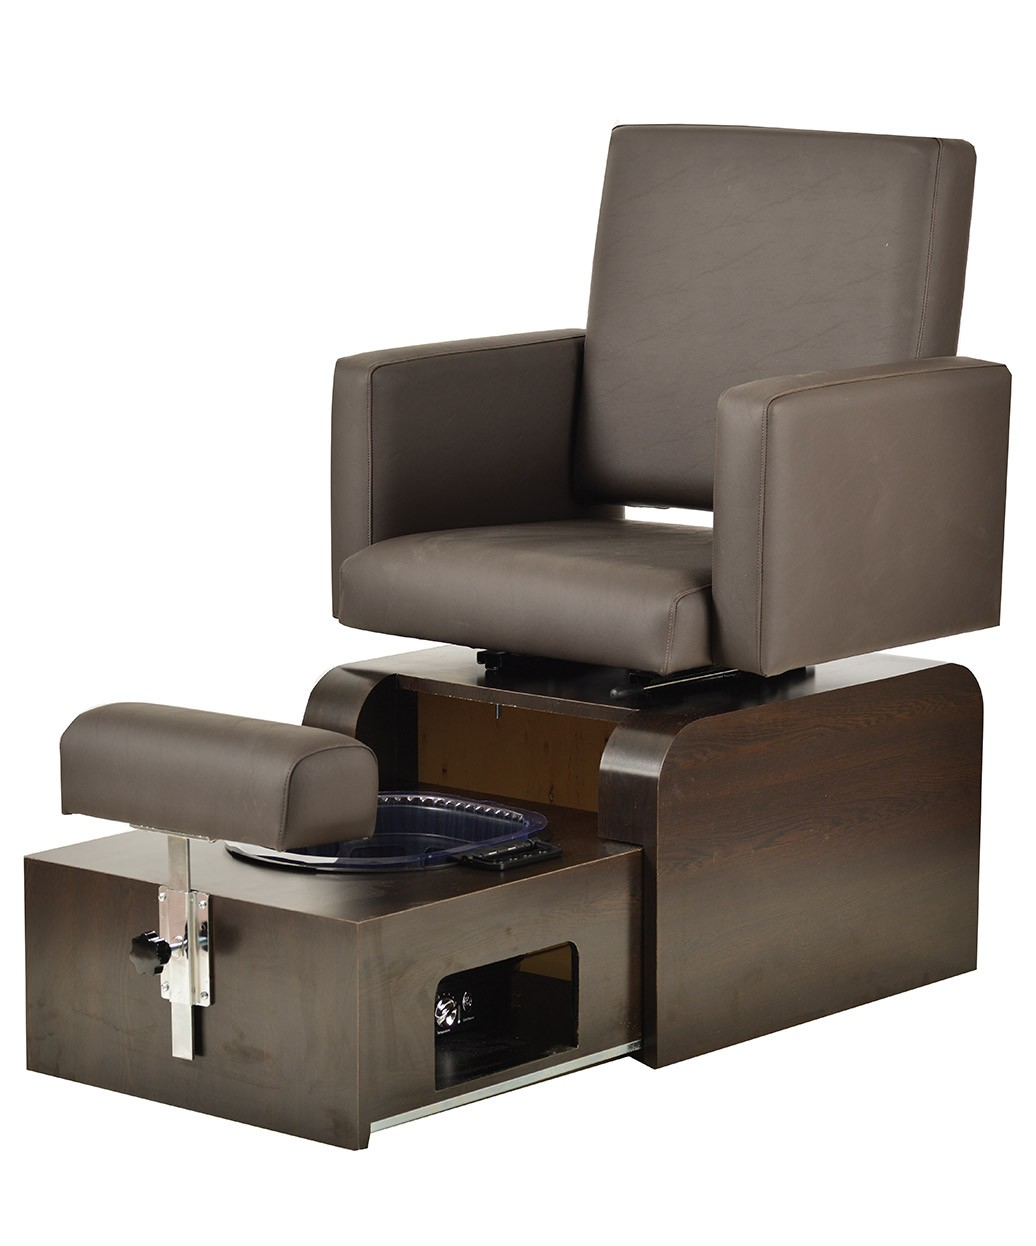 used no plumbing pedicure chair desk attached to pibbs ps10 san remo footsie spa